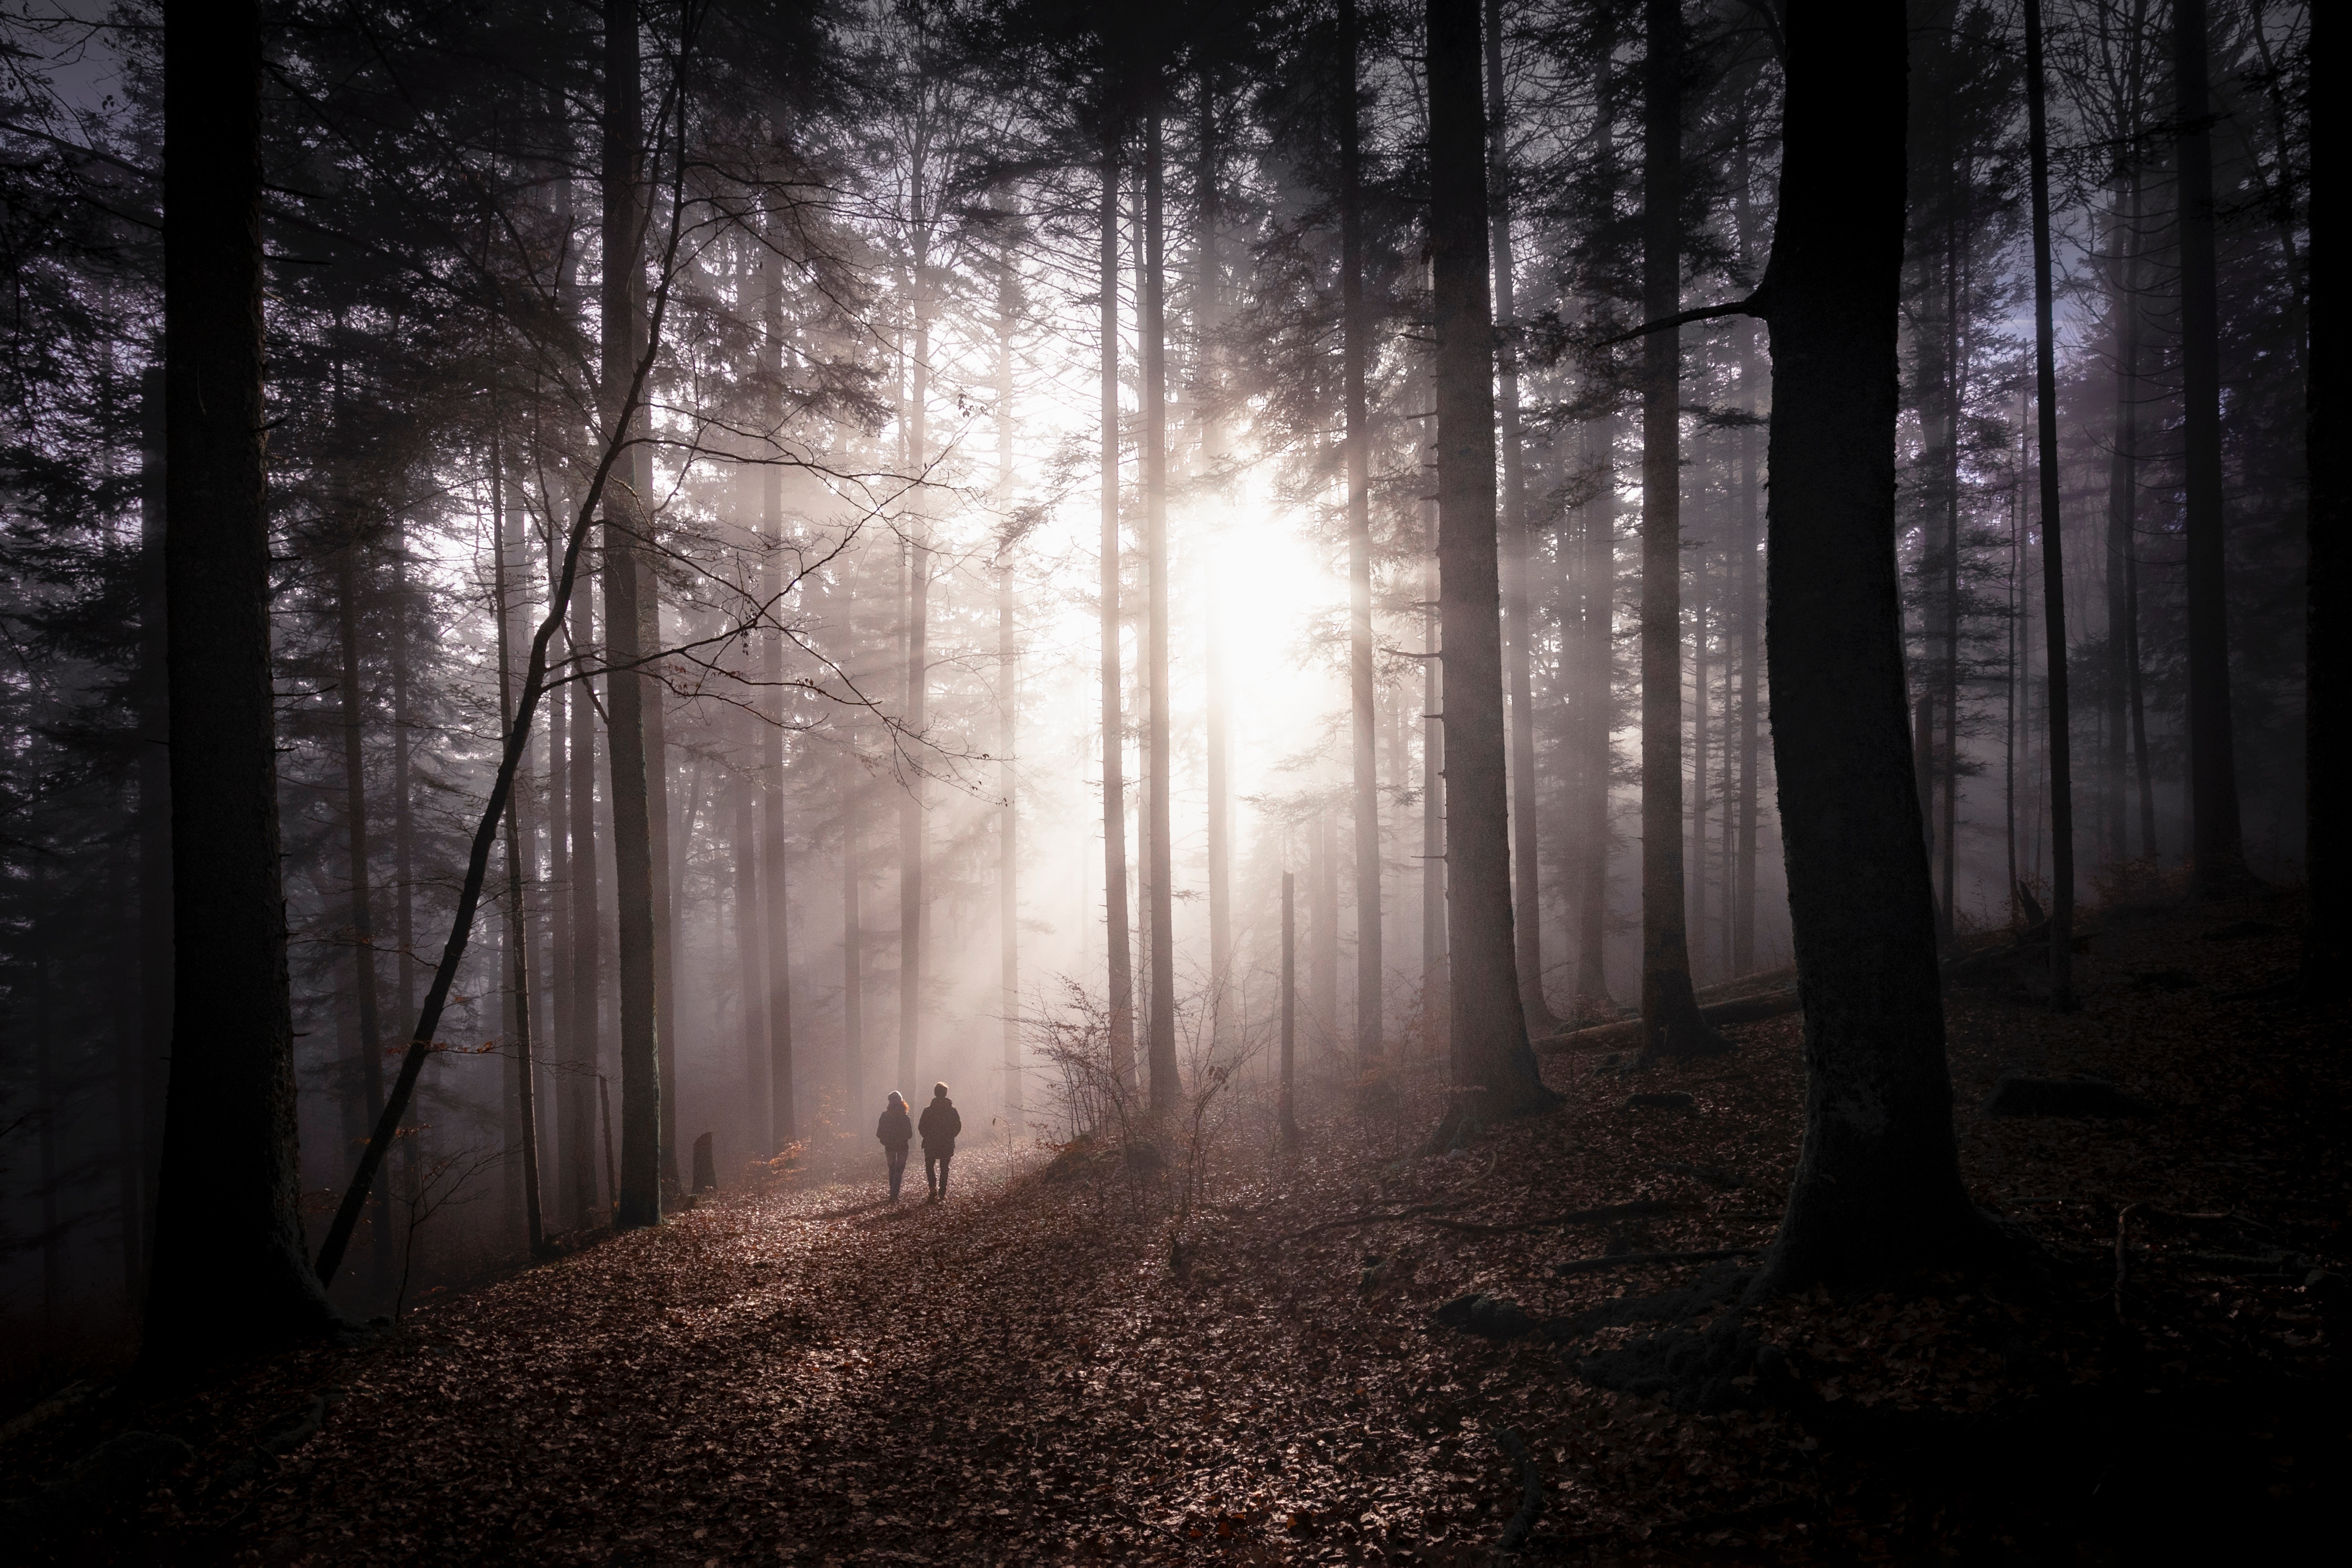 156460 download wallpaper Nature, Forest, Fog, Silhouettes, Stroll, Autumn, Couple, Pair screensavers and pictures for free